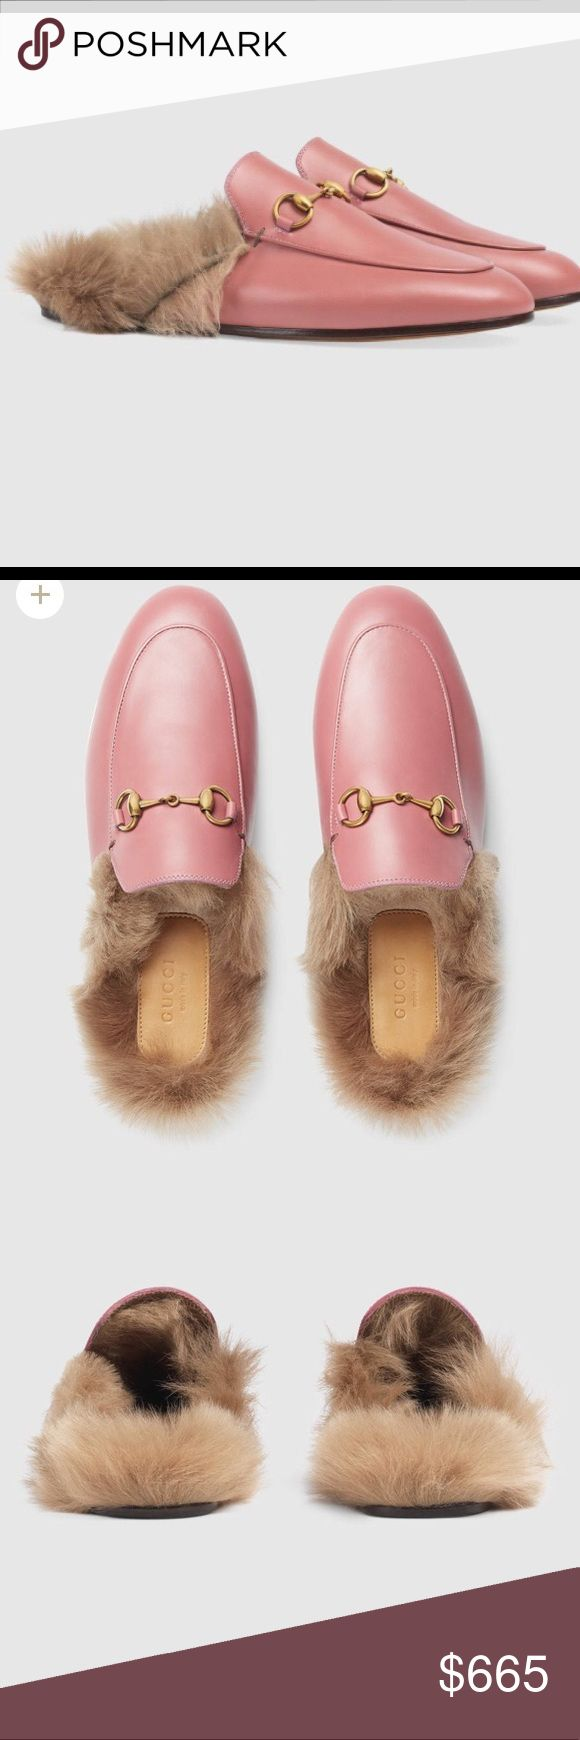 Gucci shoes Authentic 👌🏽 Mules, Brand New with all tags and original box size 41 EU. Color Lipstick Rose/Natur. Betis Glamour/Glasgow. Size fits 9.5 and 10 US Gucci Shoes Mules & Clogs